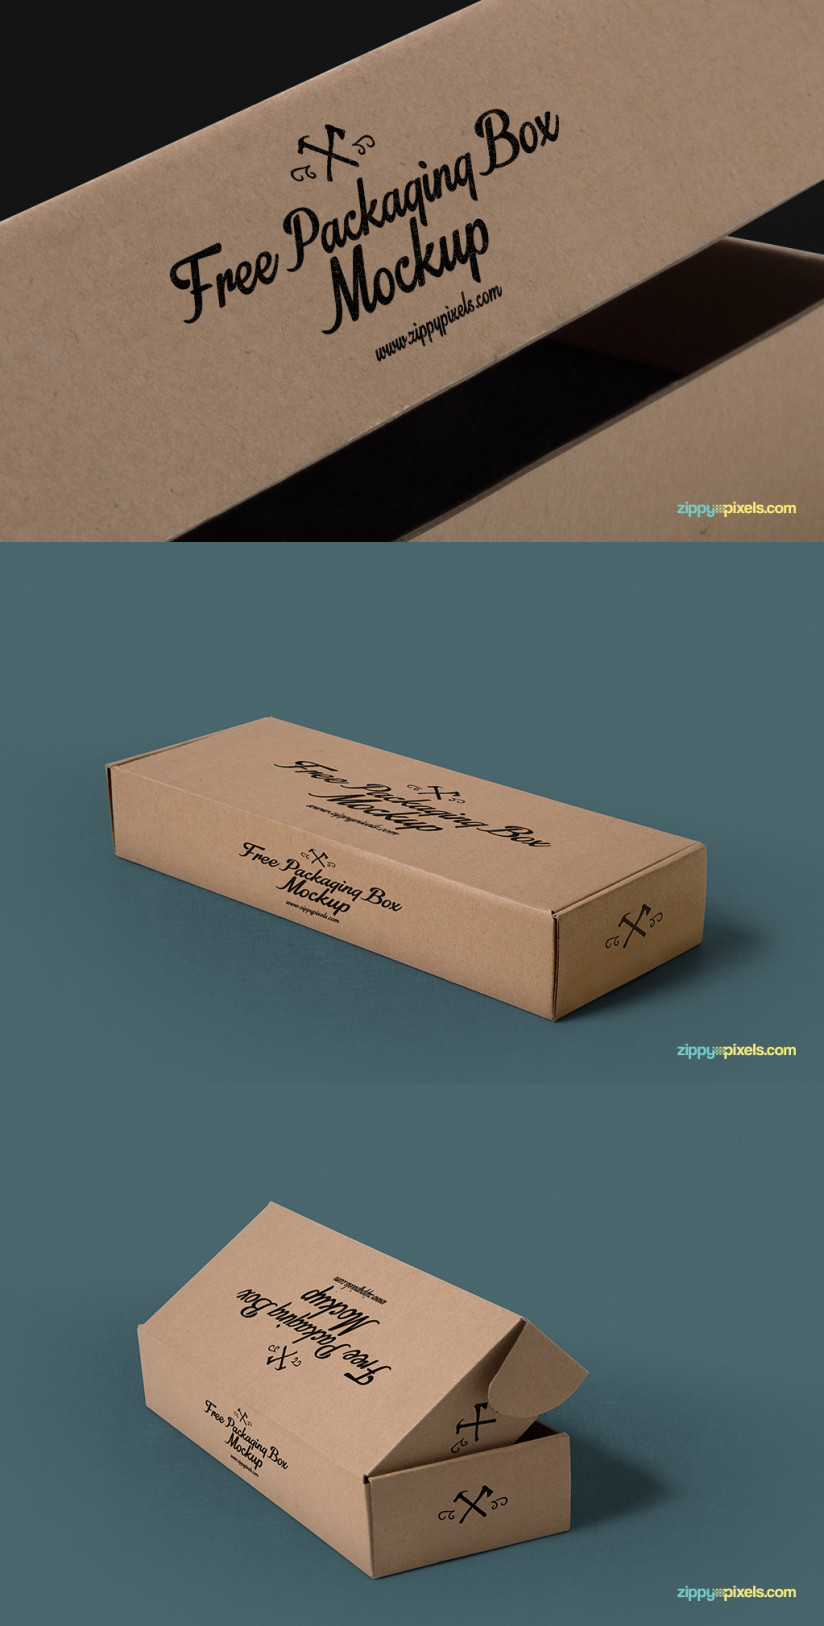 3 FREE PACKAGING MOCKUPS WITH CUSTOMIZABLE BACKGROUNDS by ZippyPixels